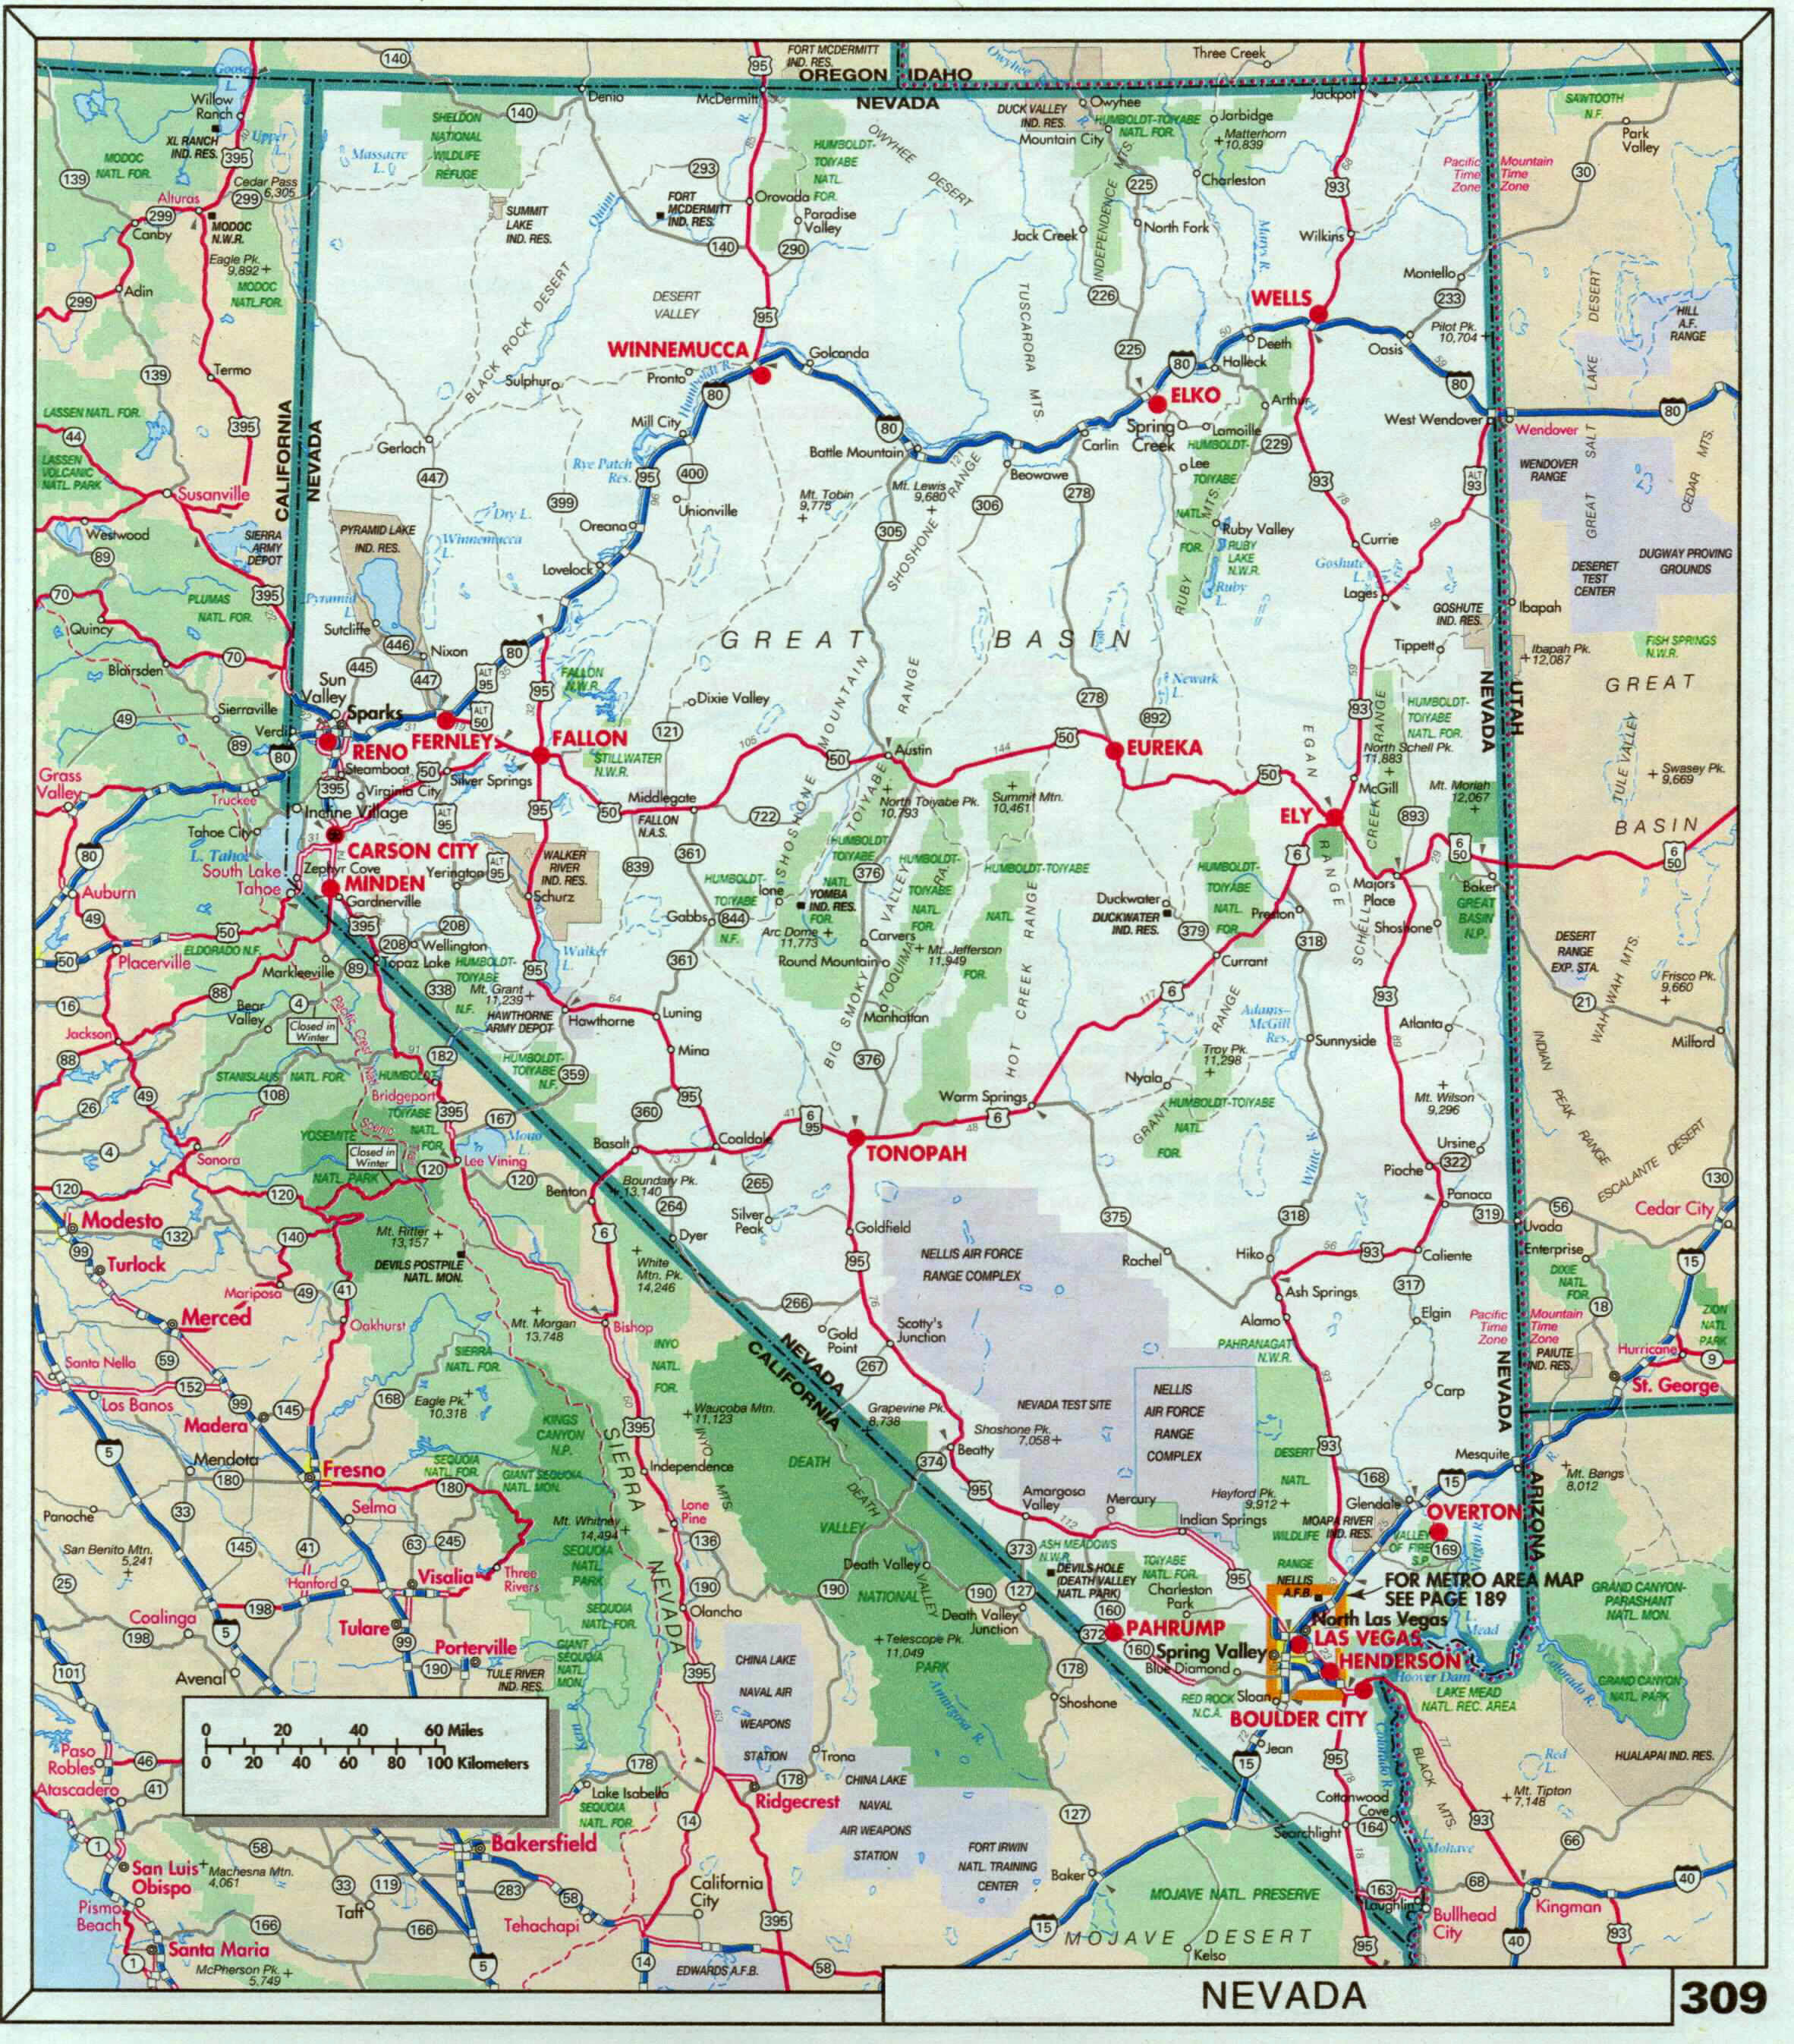 Large Detailed Roads And Highways Map Of Nevada State With - Map of national parks in united states